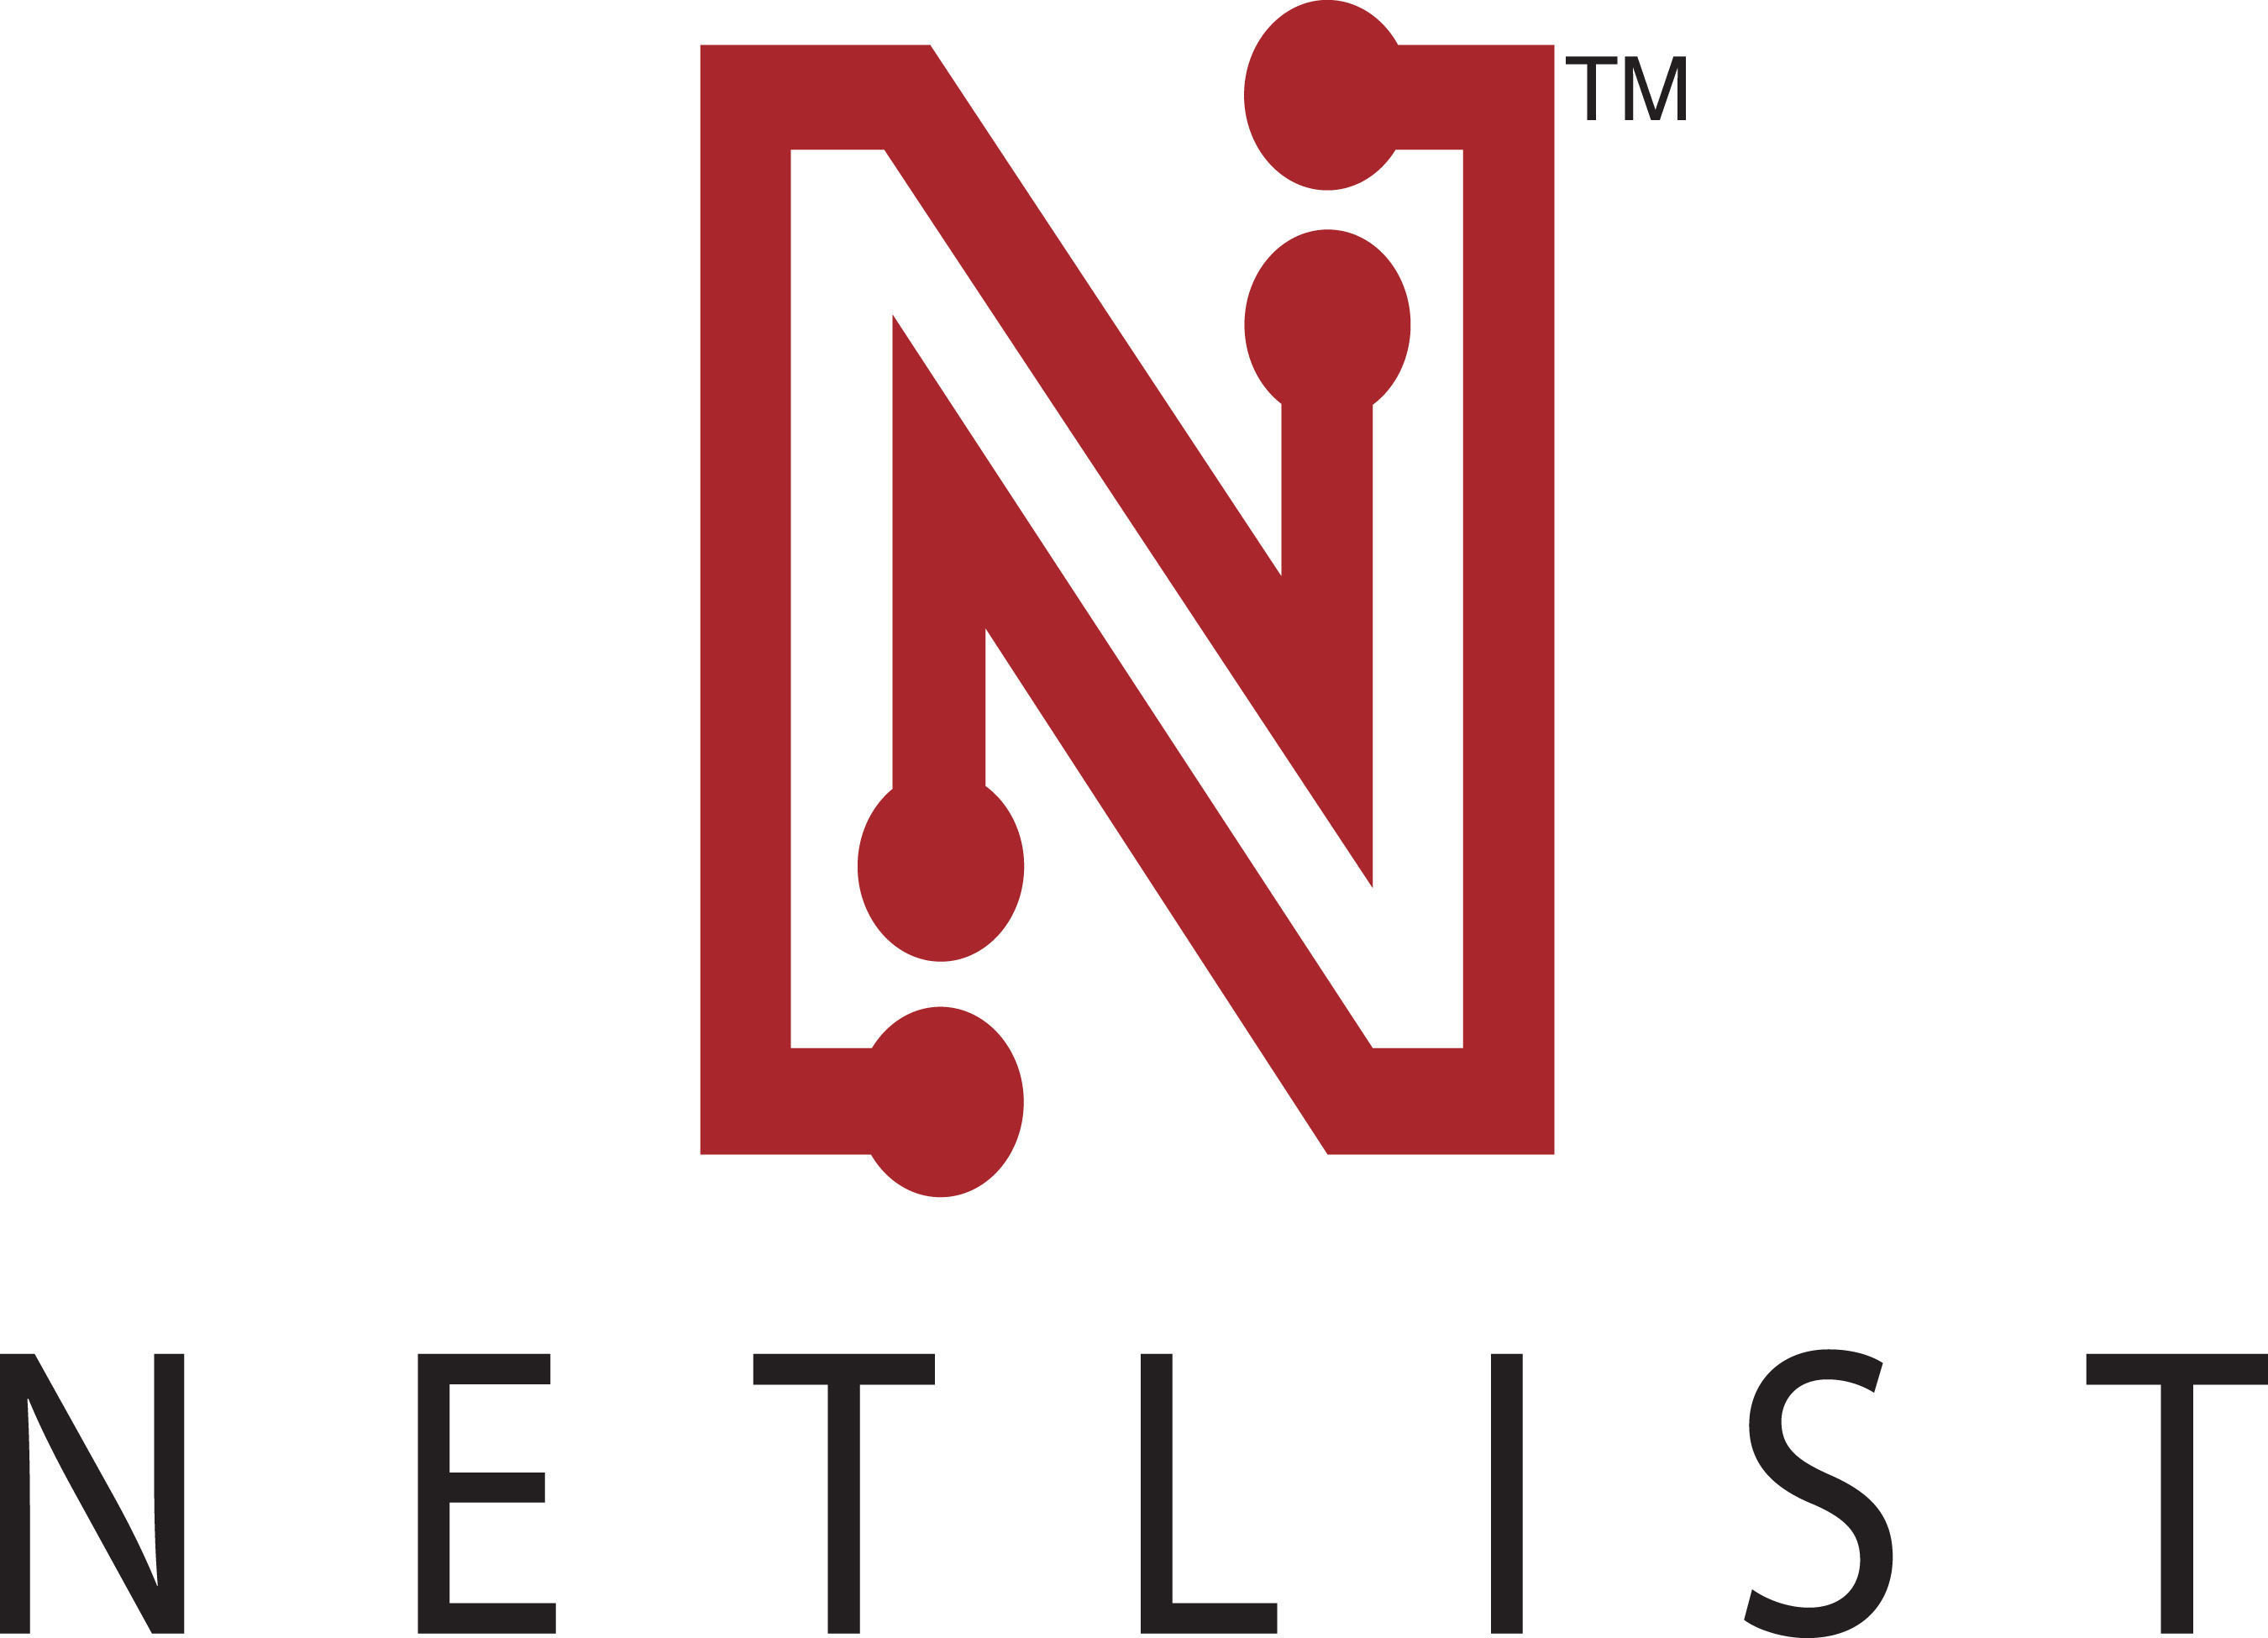 USPTO Issues Reexamination Certificate For Netlist Seminal LRDIMM Patent